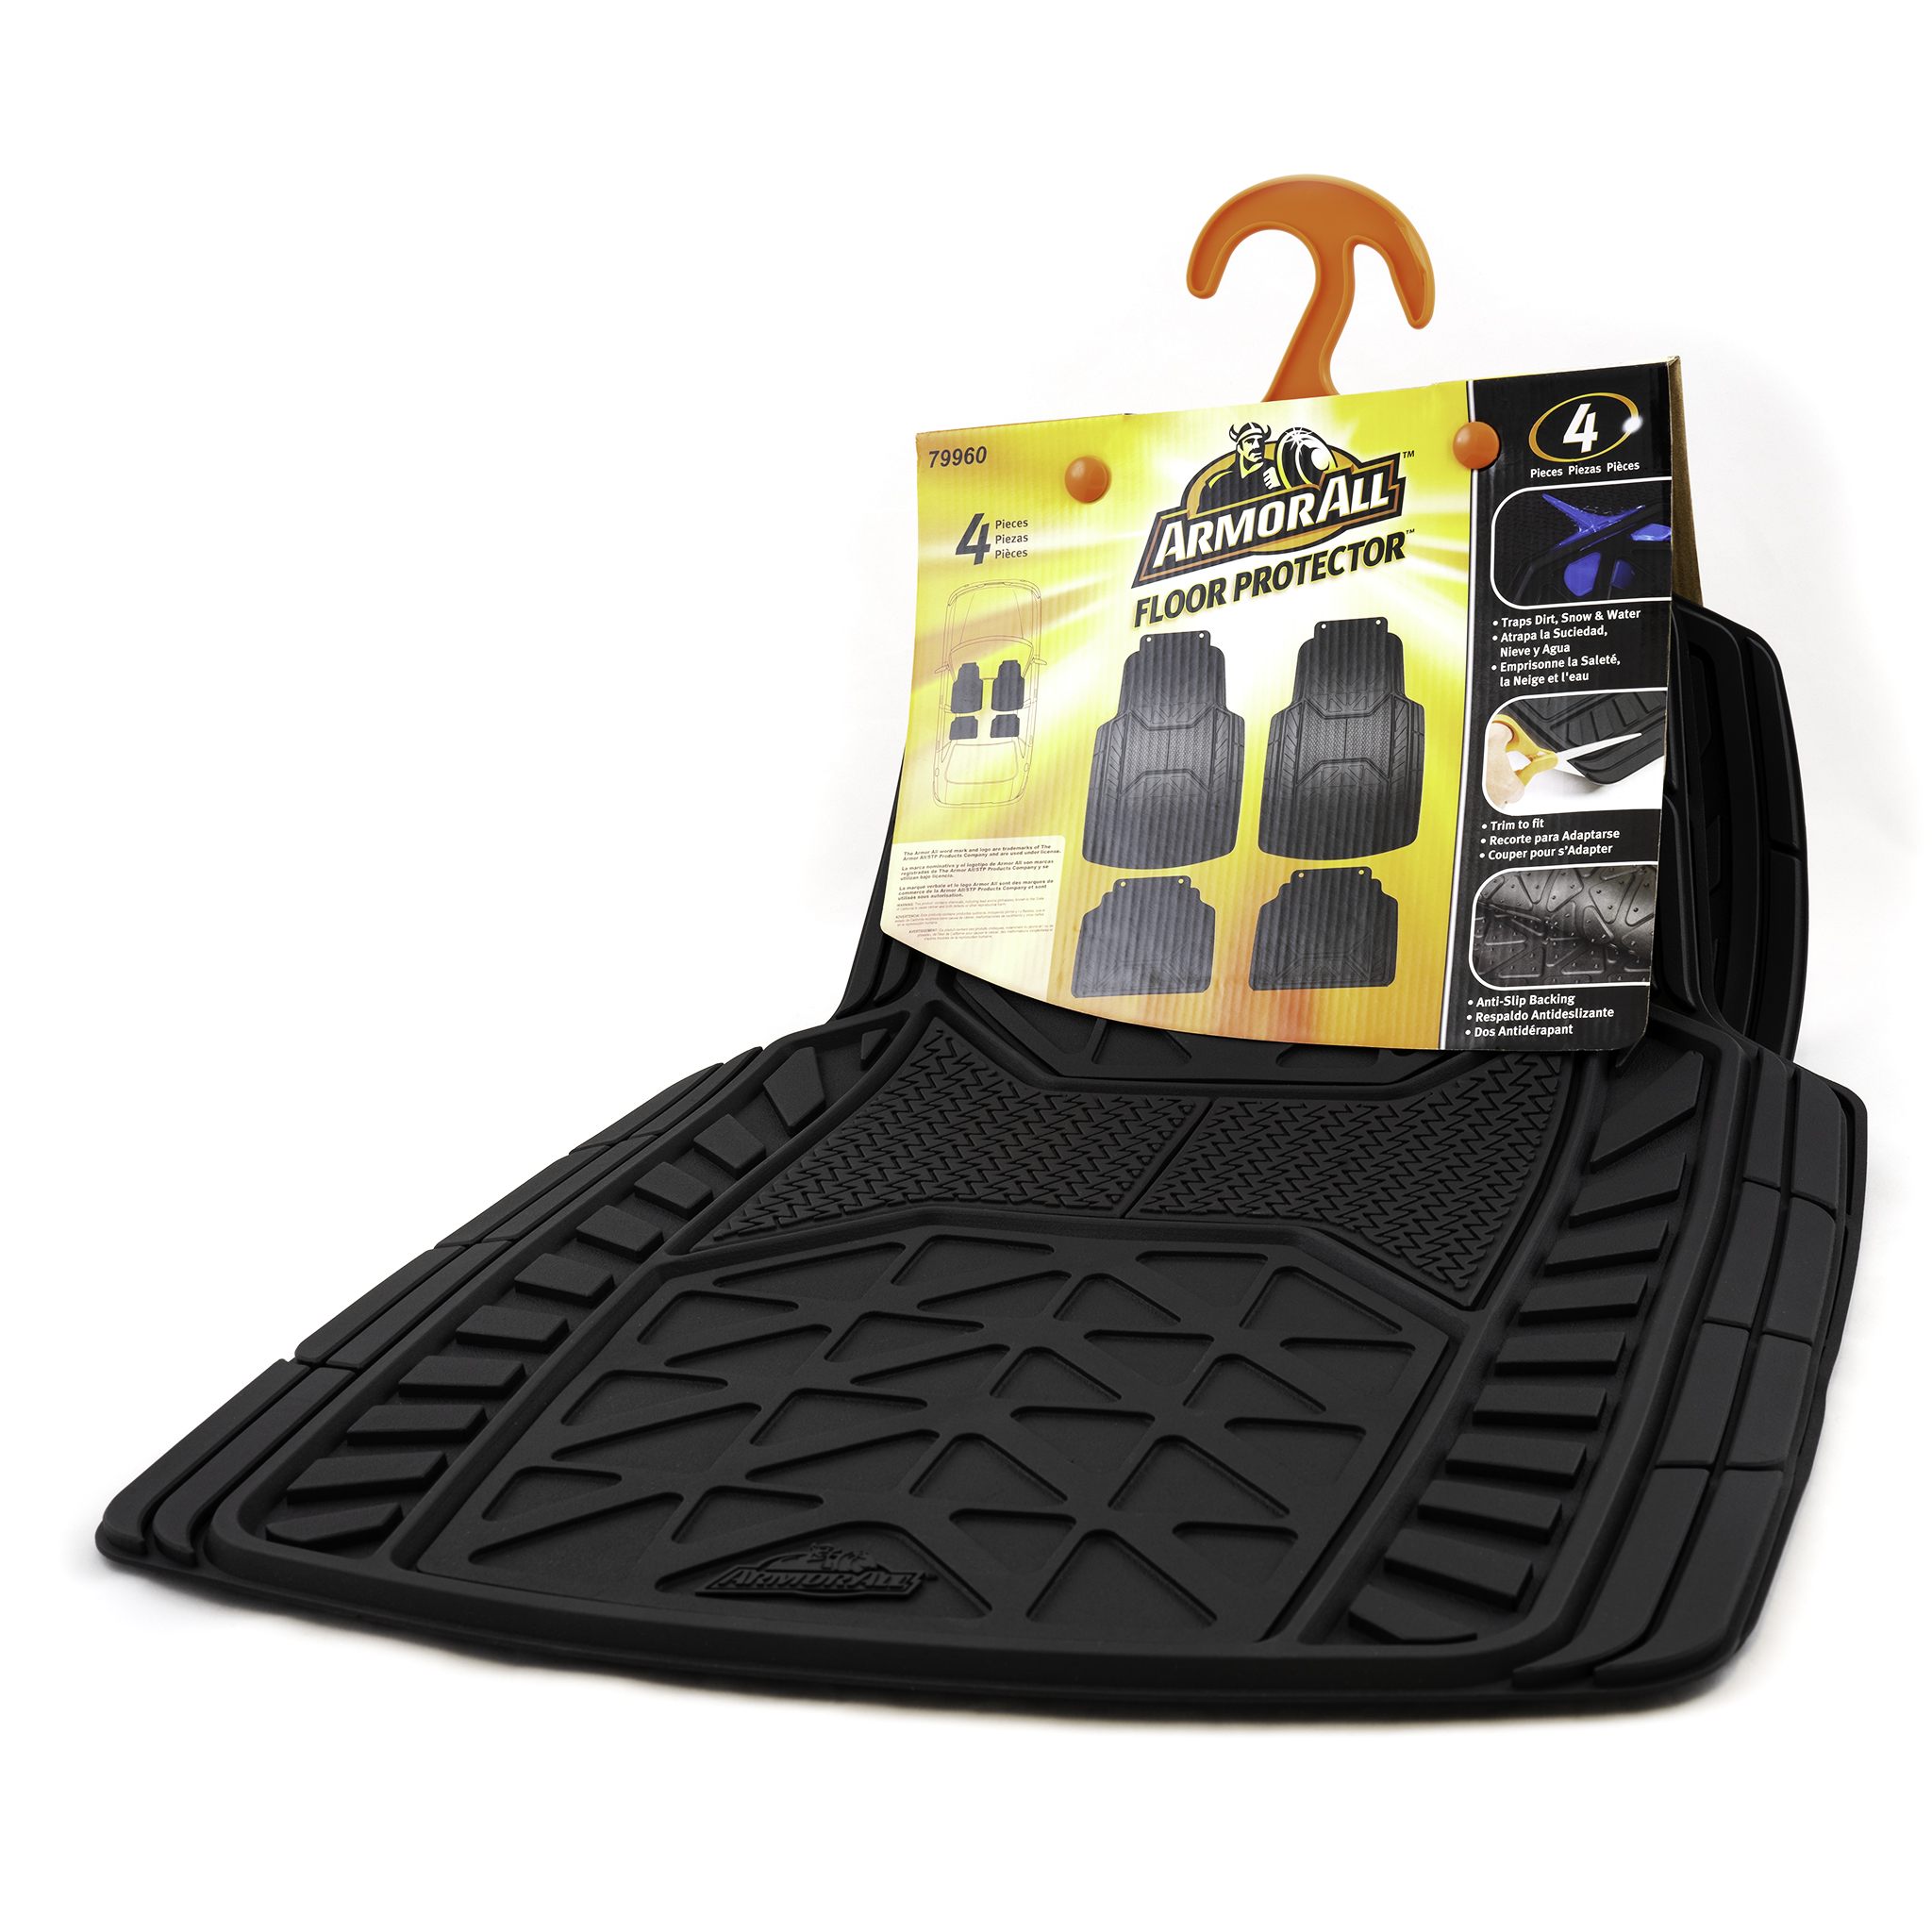 Armor All Floor Mats - Packaging Front Three Quarter View Cropped.jpg